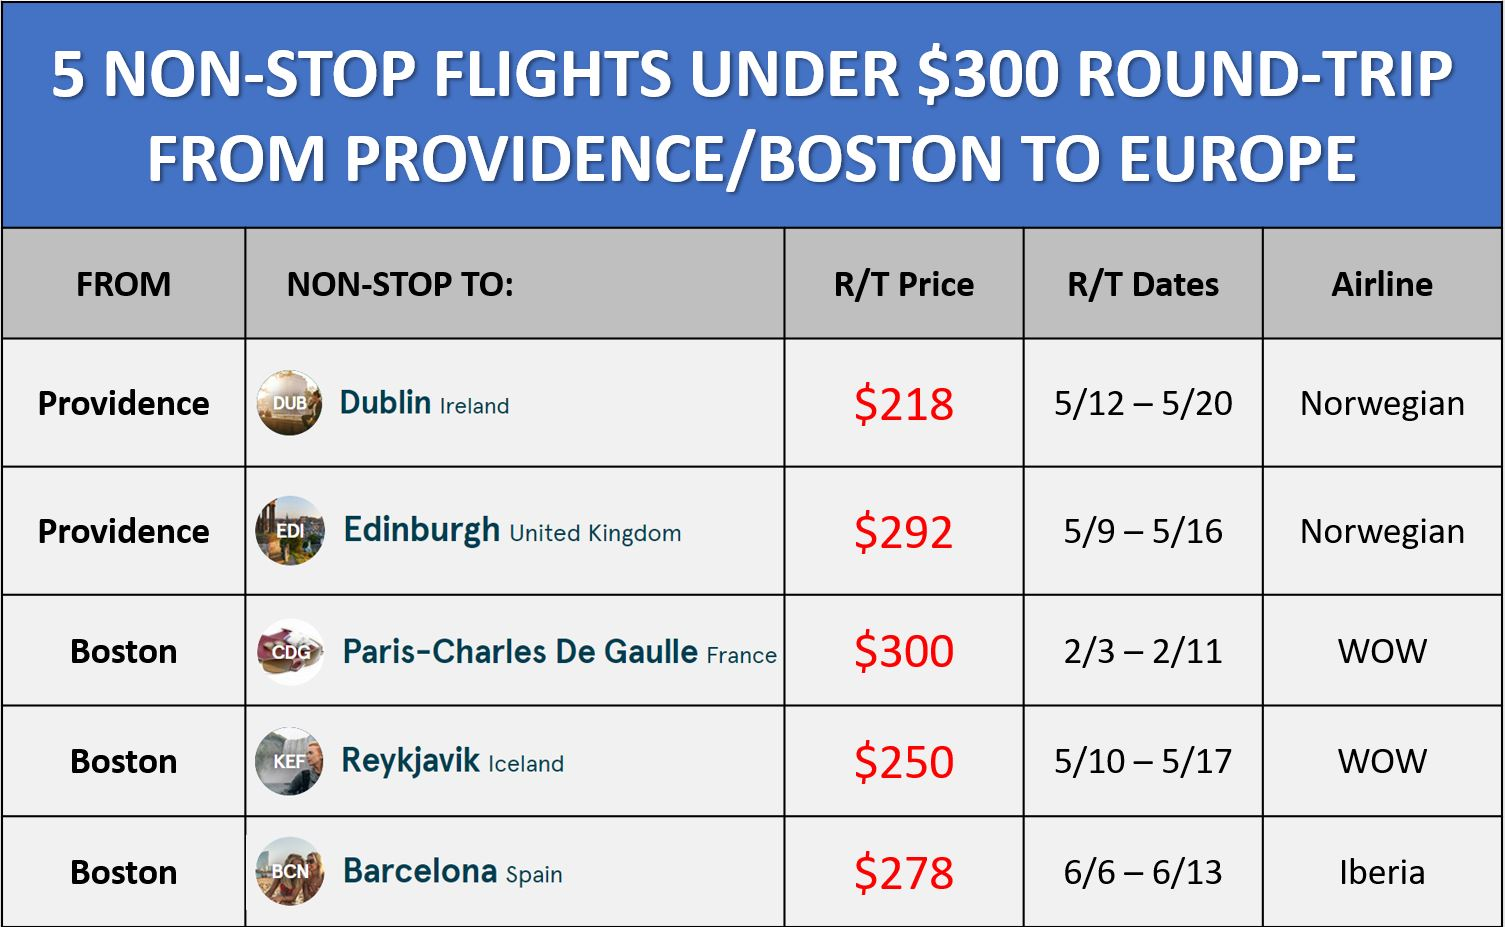 5 NON-STOP FLIGHTS UNDER $300 ROUND-TRIP FROM PROVIDENCE/BOSTON TO EUROPE